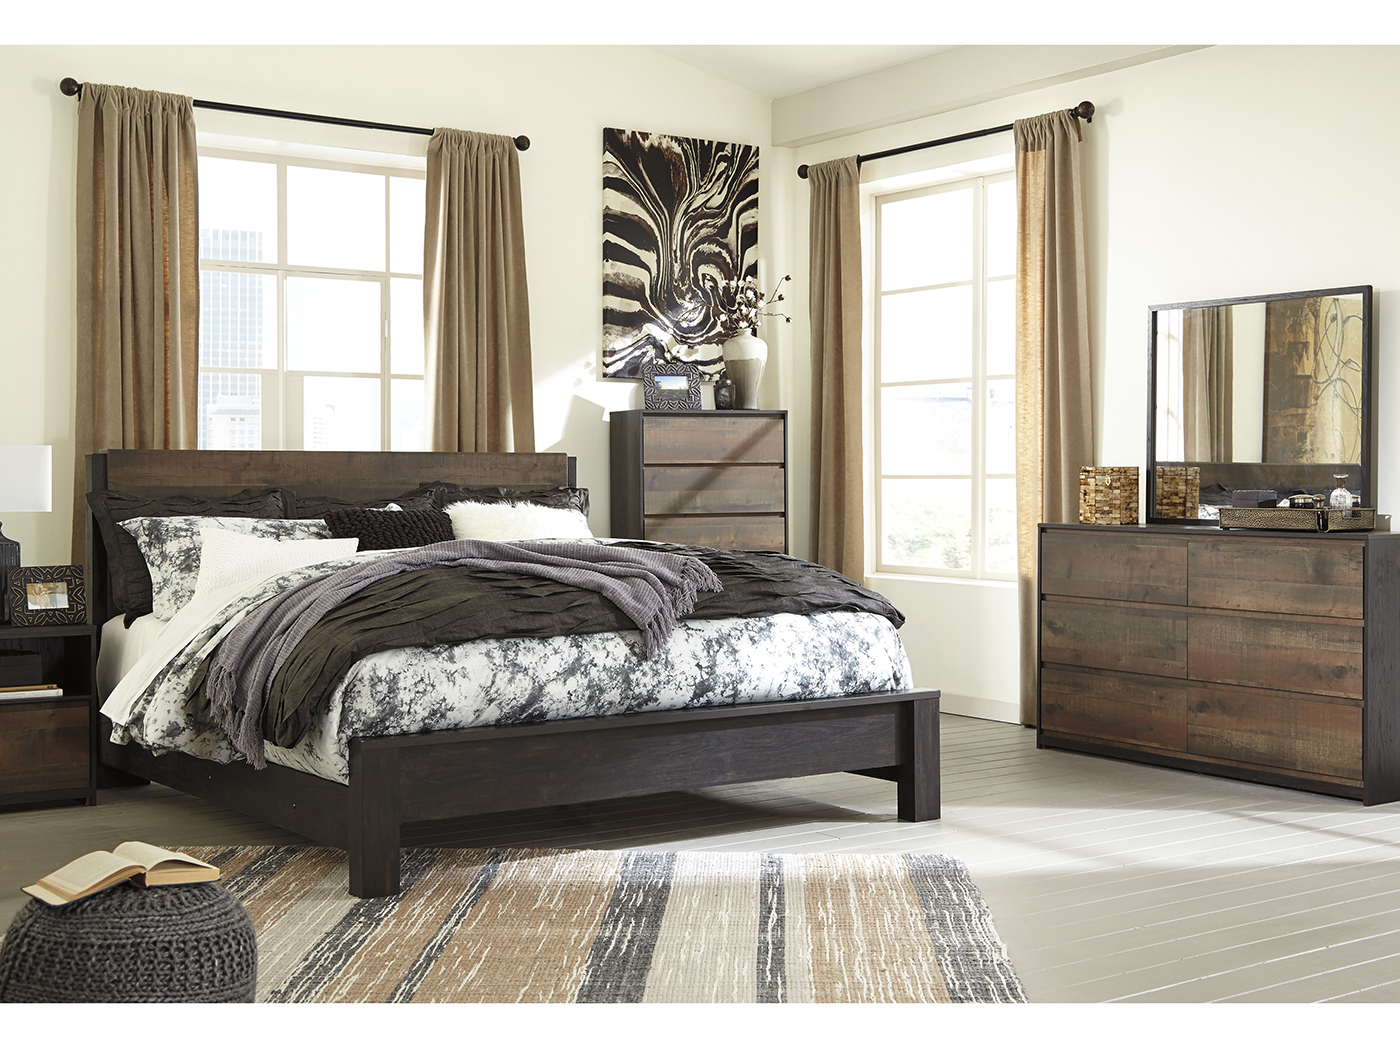 Windlore 5-pc. King Bedroom Set